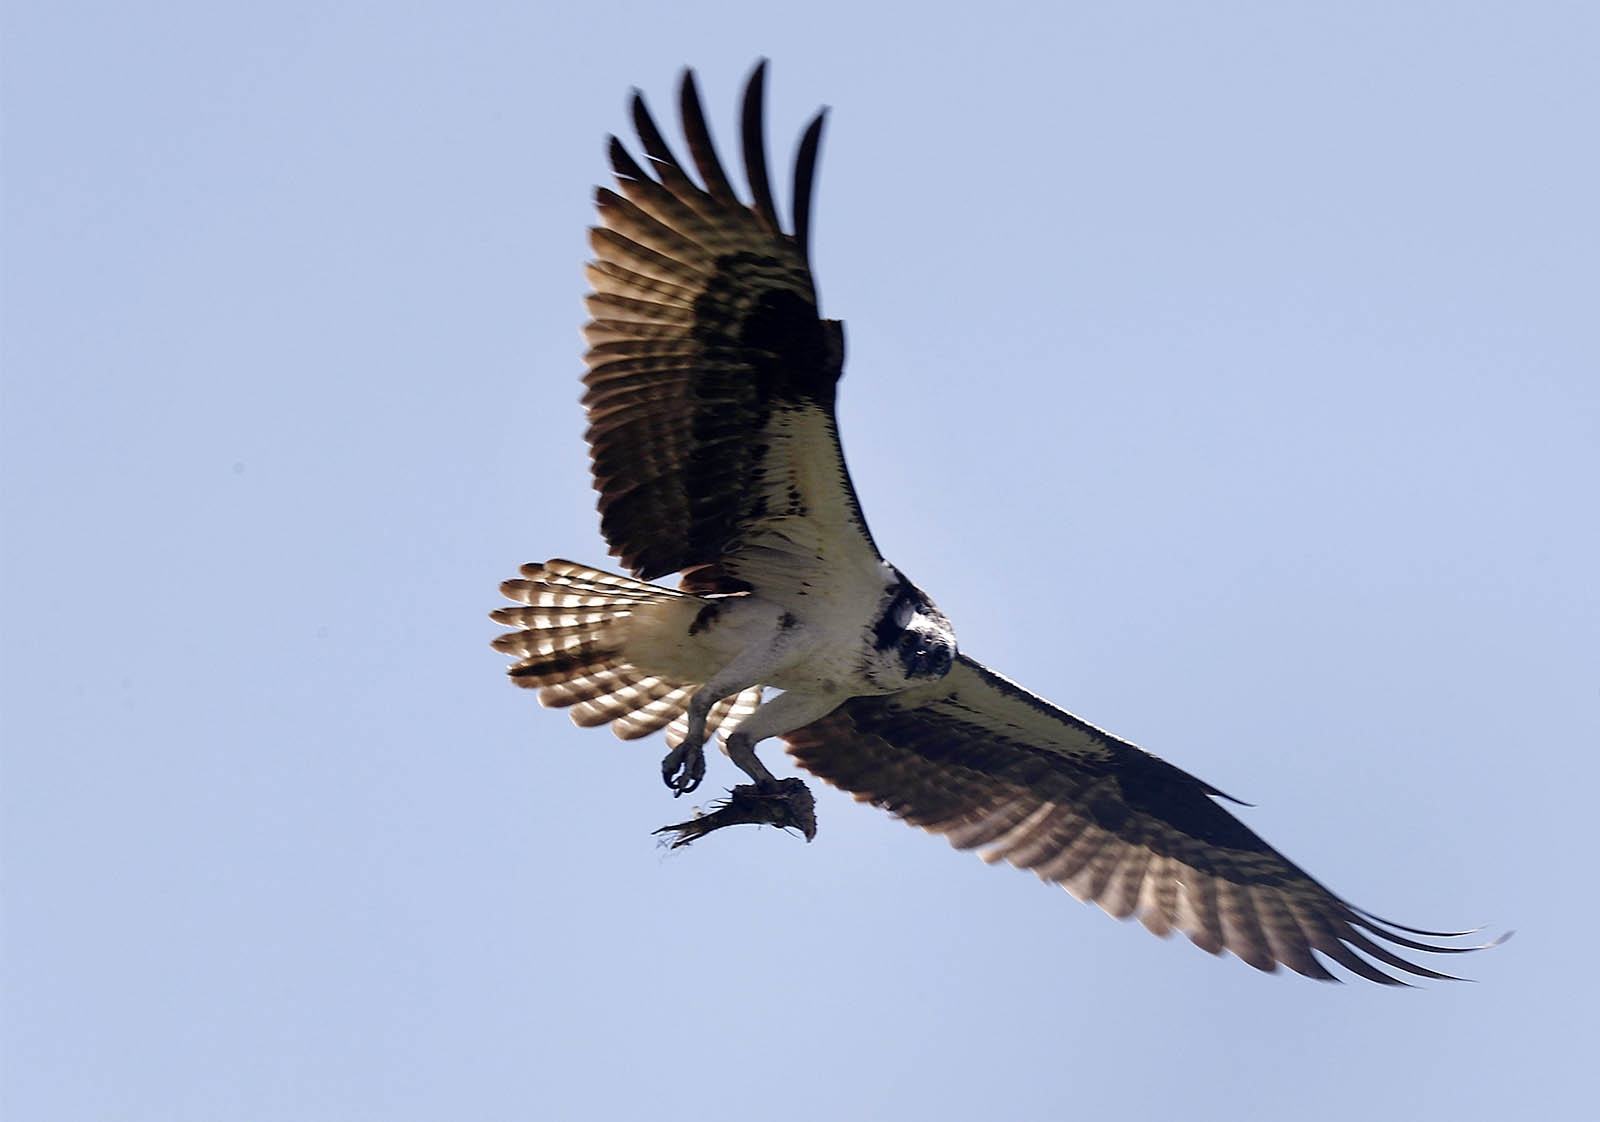 An osprey flies in the sky above Iroquois National Wildlife Refuge and its nest where it feeds its offspring, in Basom.